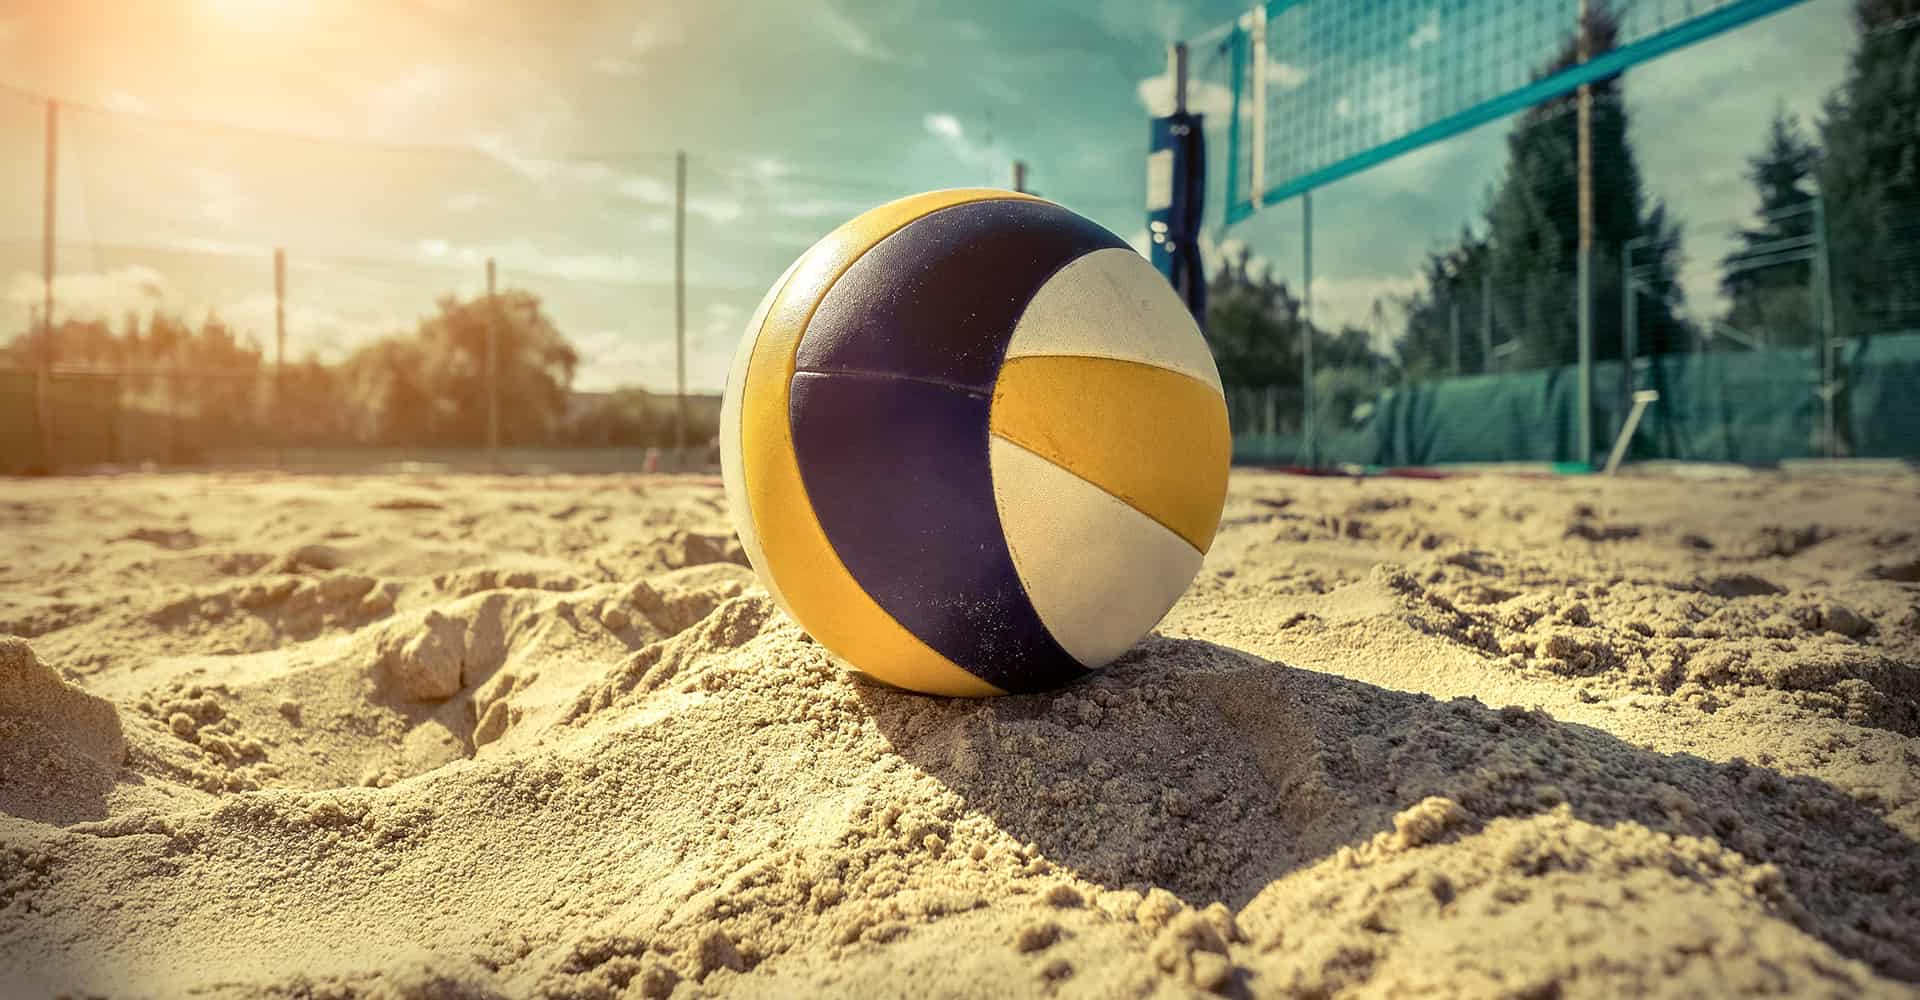 5 Best Volleyball Balls Reviewed For Indoor Outdoor The Beach 2020